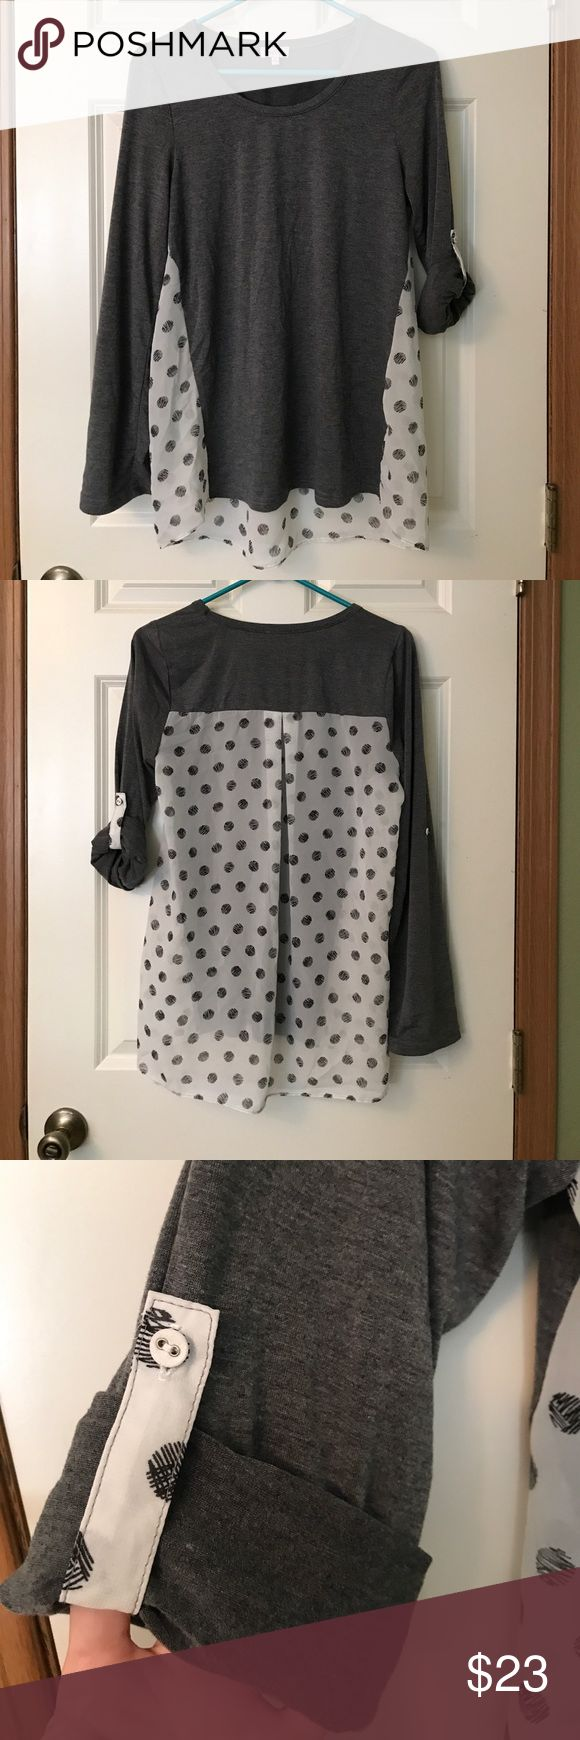 Mixed media polka dot print top - EUC Pixley brand top from Stitch Fix. This mixed media too has a soft grey knit on the front, and a super cute sketched polka dot ultra light poly in the back. The polka dot fabric is sheer. Features roll tab sleeves that can be worn full length, or rolled up and secured with a polka dot print tab and matching button. Super cute, and a little sexy with that sheer back. Great with a strappy or lace bralette to show off. Pixley Tops Blouses